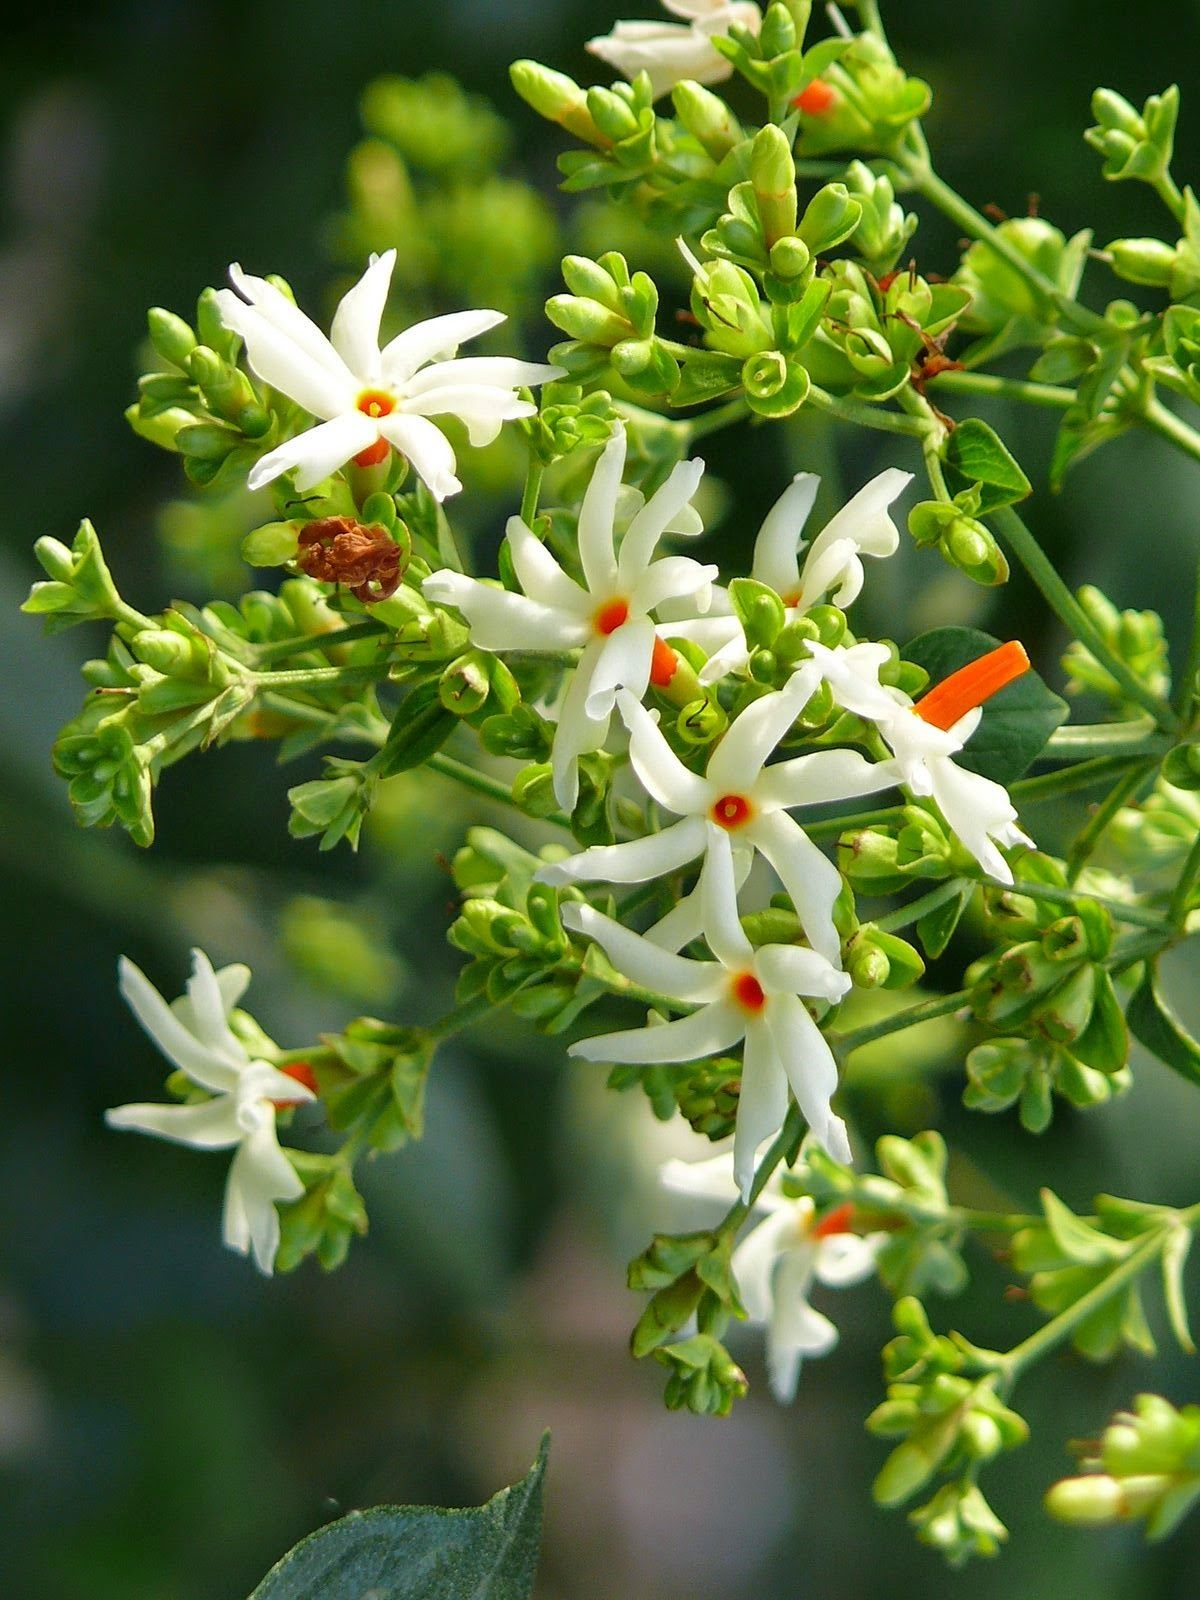 Cultivating nightblooming Jasmine near your bedroom